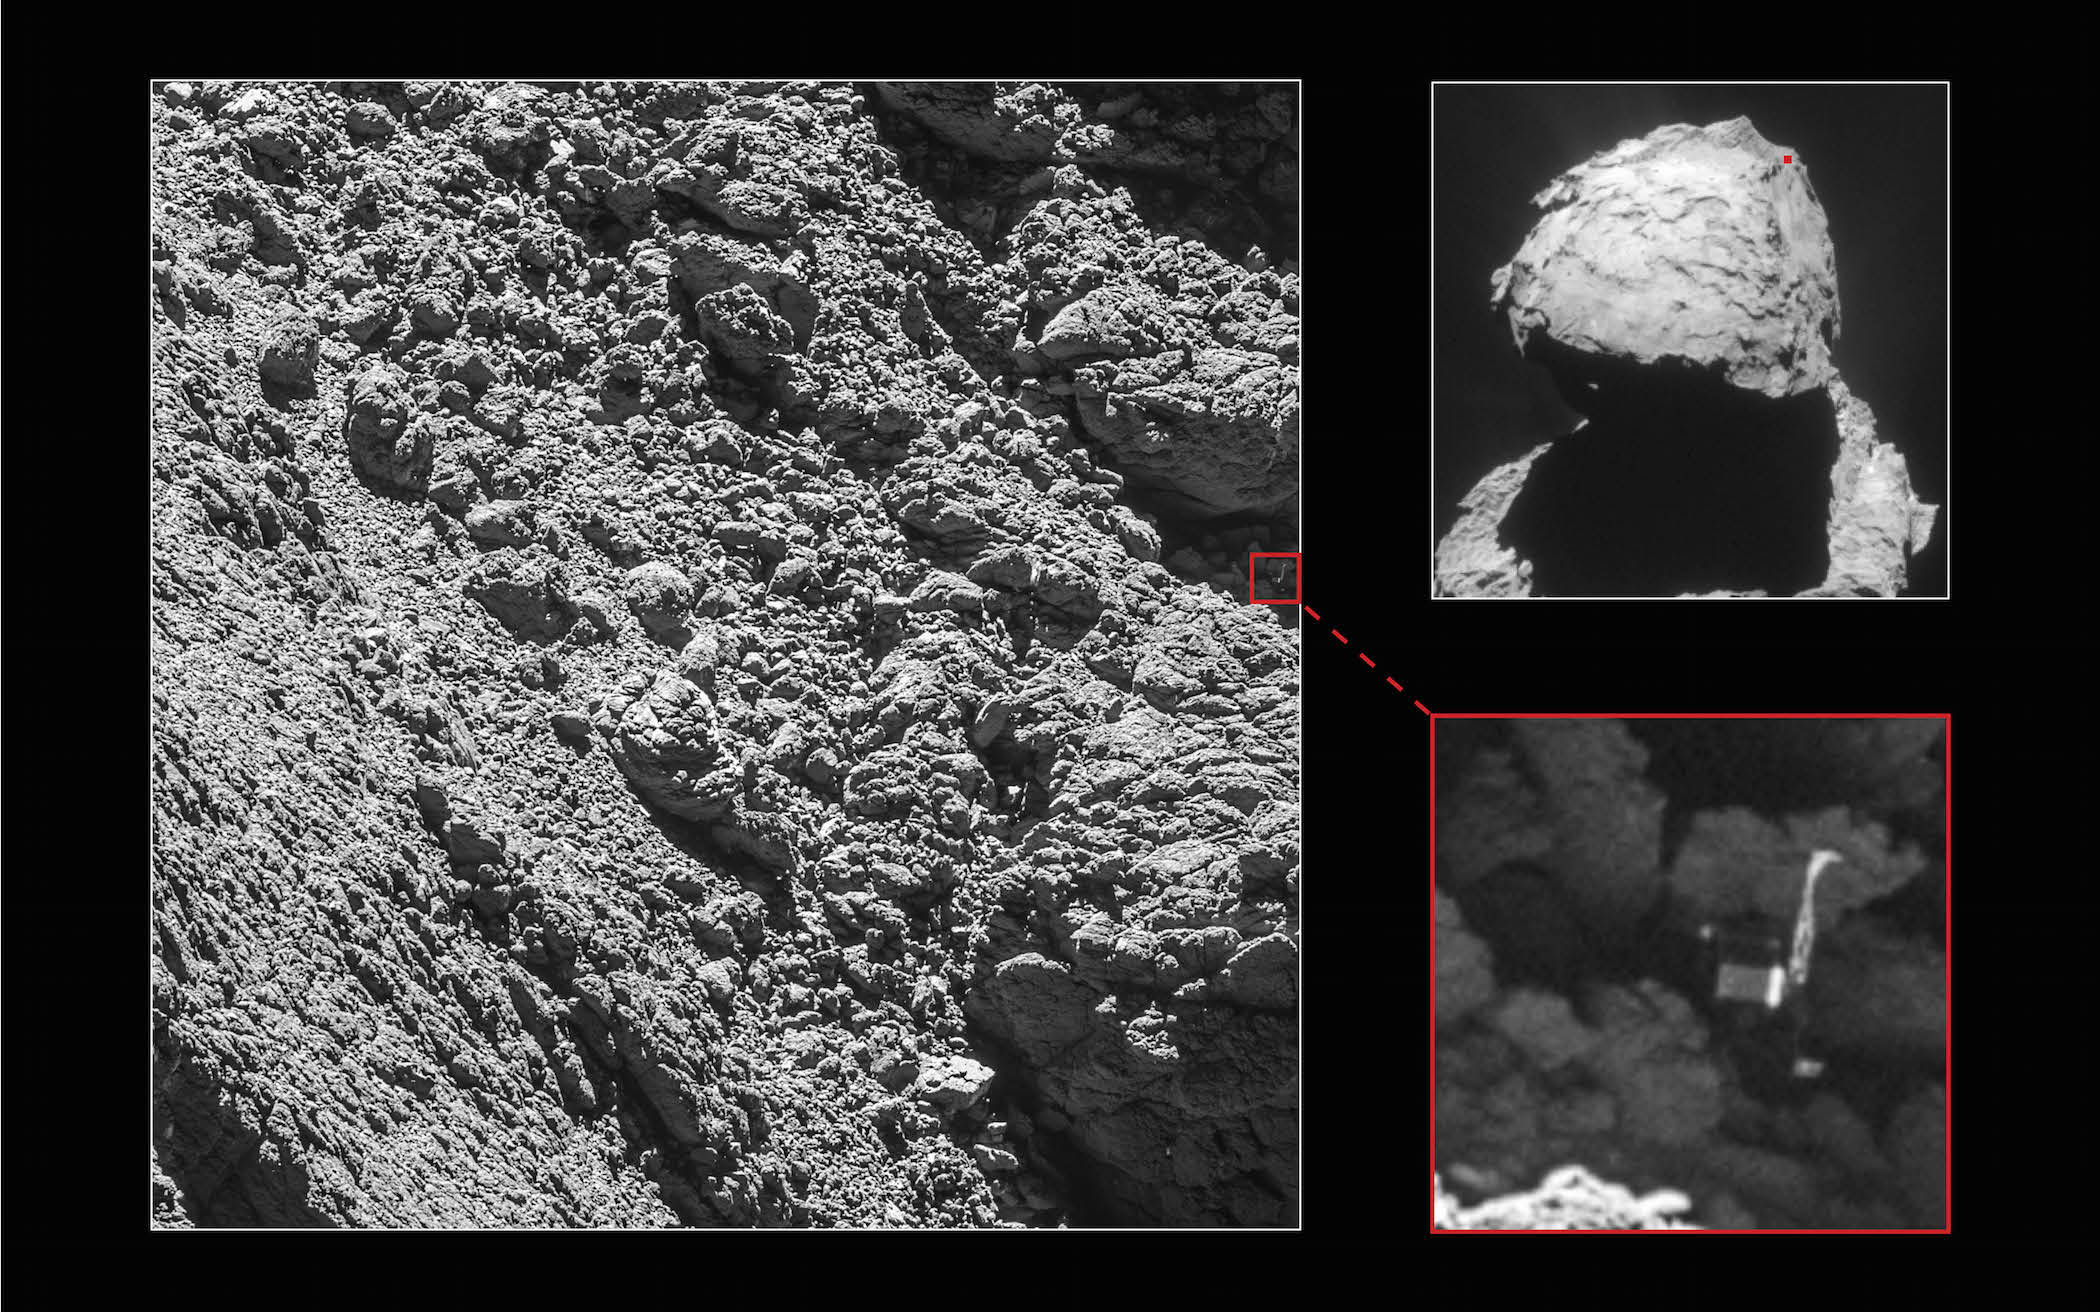 Rosetta's lander Philae has been identified in OSIRIS narrow-angle camera images taken on Sept. 2, 2016 from a distance of 1.7 miles (2.7 kilometers). The image scale is about 2 inches (5 centimeters) per pixel. Philae's 3-foot-wide (1-meter) body and two of its three legs can be seen extended from the body. The images also provide proof of Philae's orientation. A Rosetta Navigation Camera image taken on 16 April 2015 is shown at top right for context, with the approximate location of Philae on the small lobe of comet Churyumov-Gerasimenko marked. Credit: Main image and lander inset: ESA/Rosetta/MPS for OSIRIS Team MPS/UPD/LAM/IAA/SSO/INTA/UPM/DASP/IDA; context: ESA/Rosetta/NavCam – CC BY-SA IGO 3.0